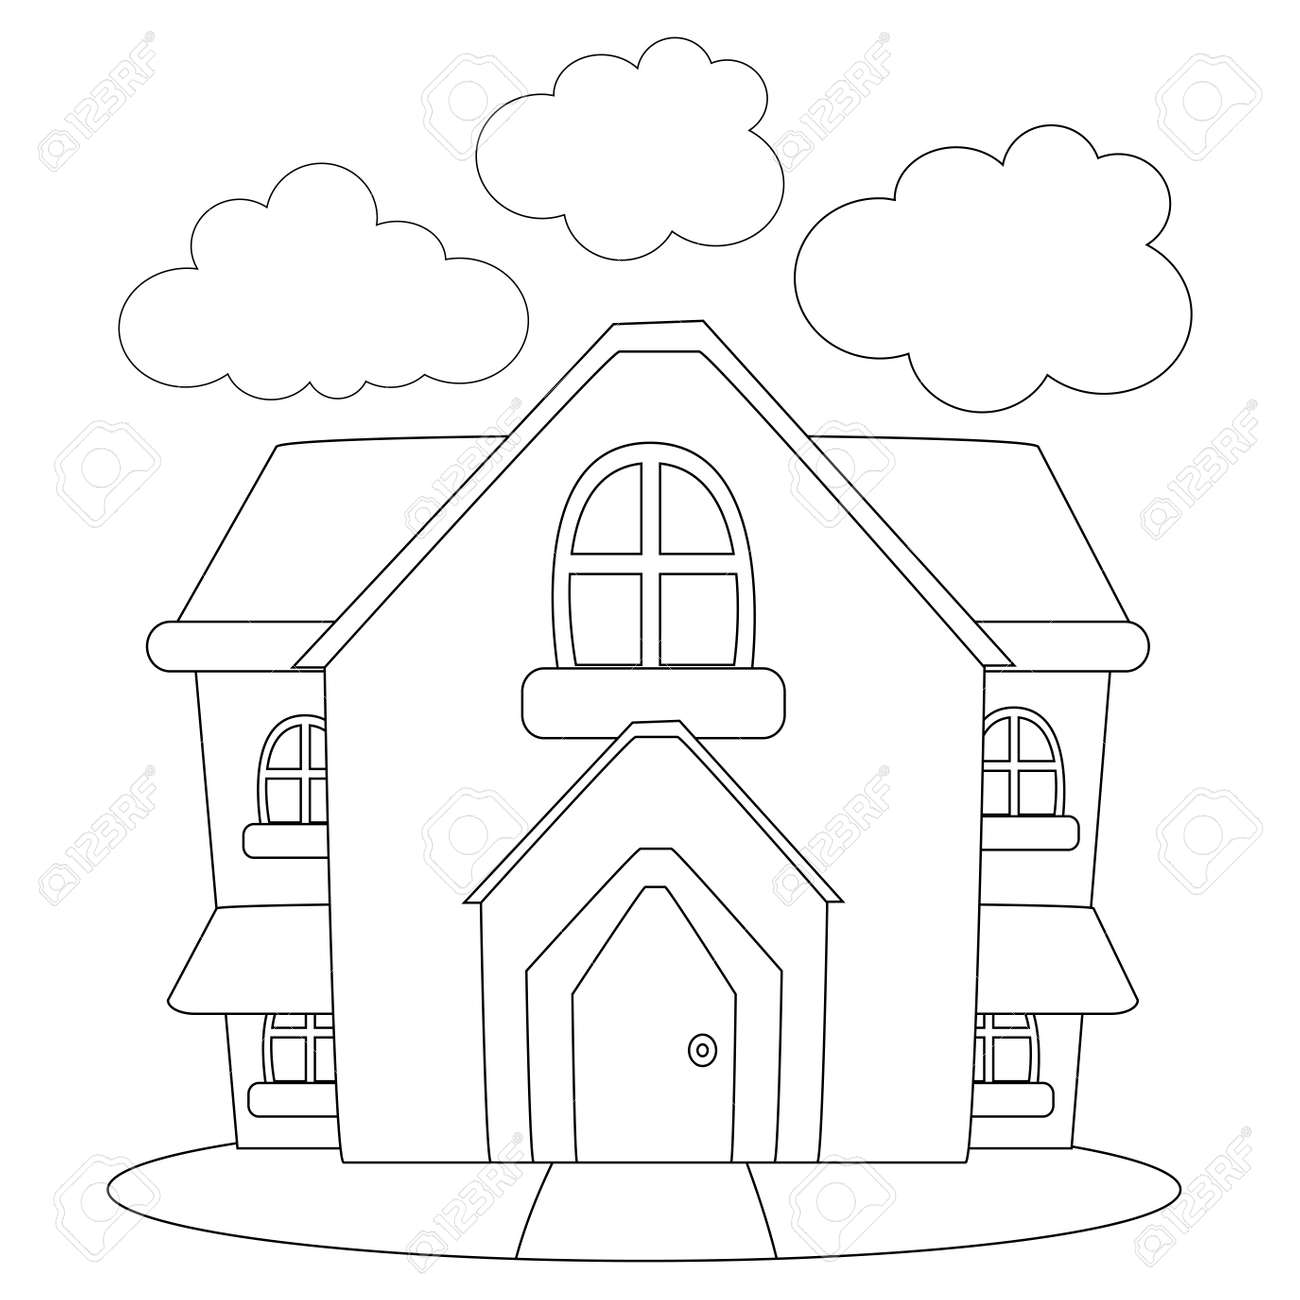 Coloring Book Outlined House Royalty Free Cliparts, Vectors, And ...